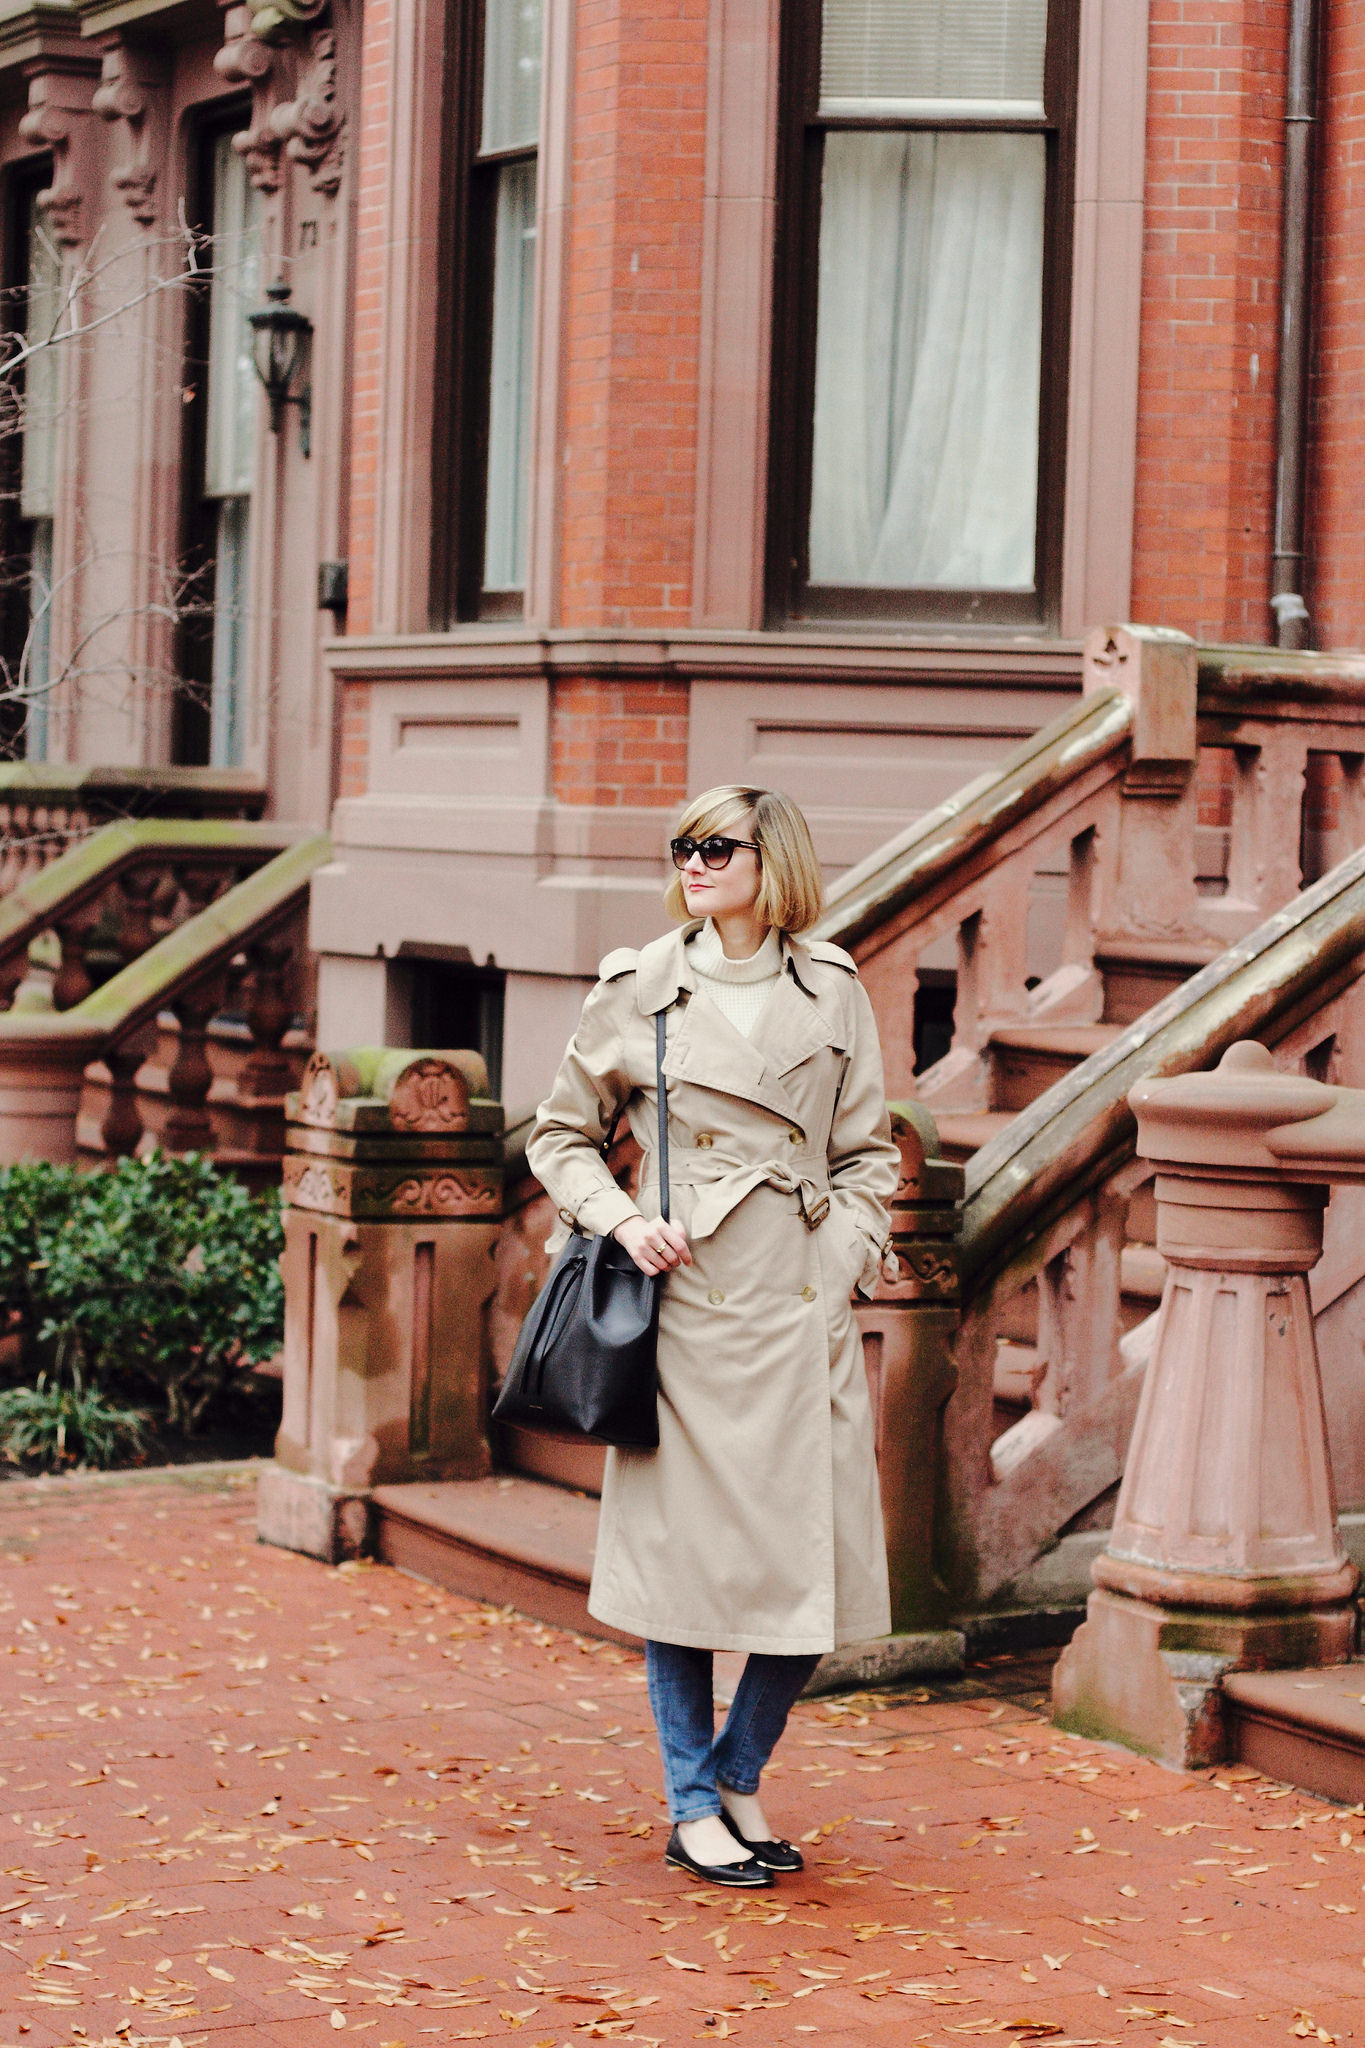 Burberry trenchcoat and Mansur Gavriel bag